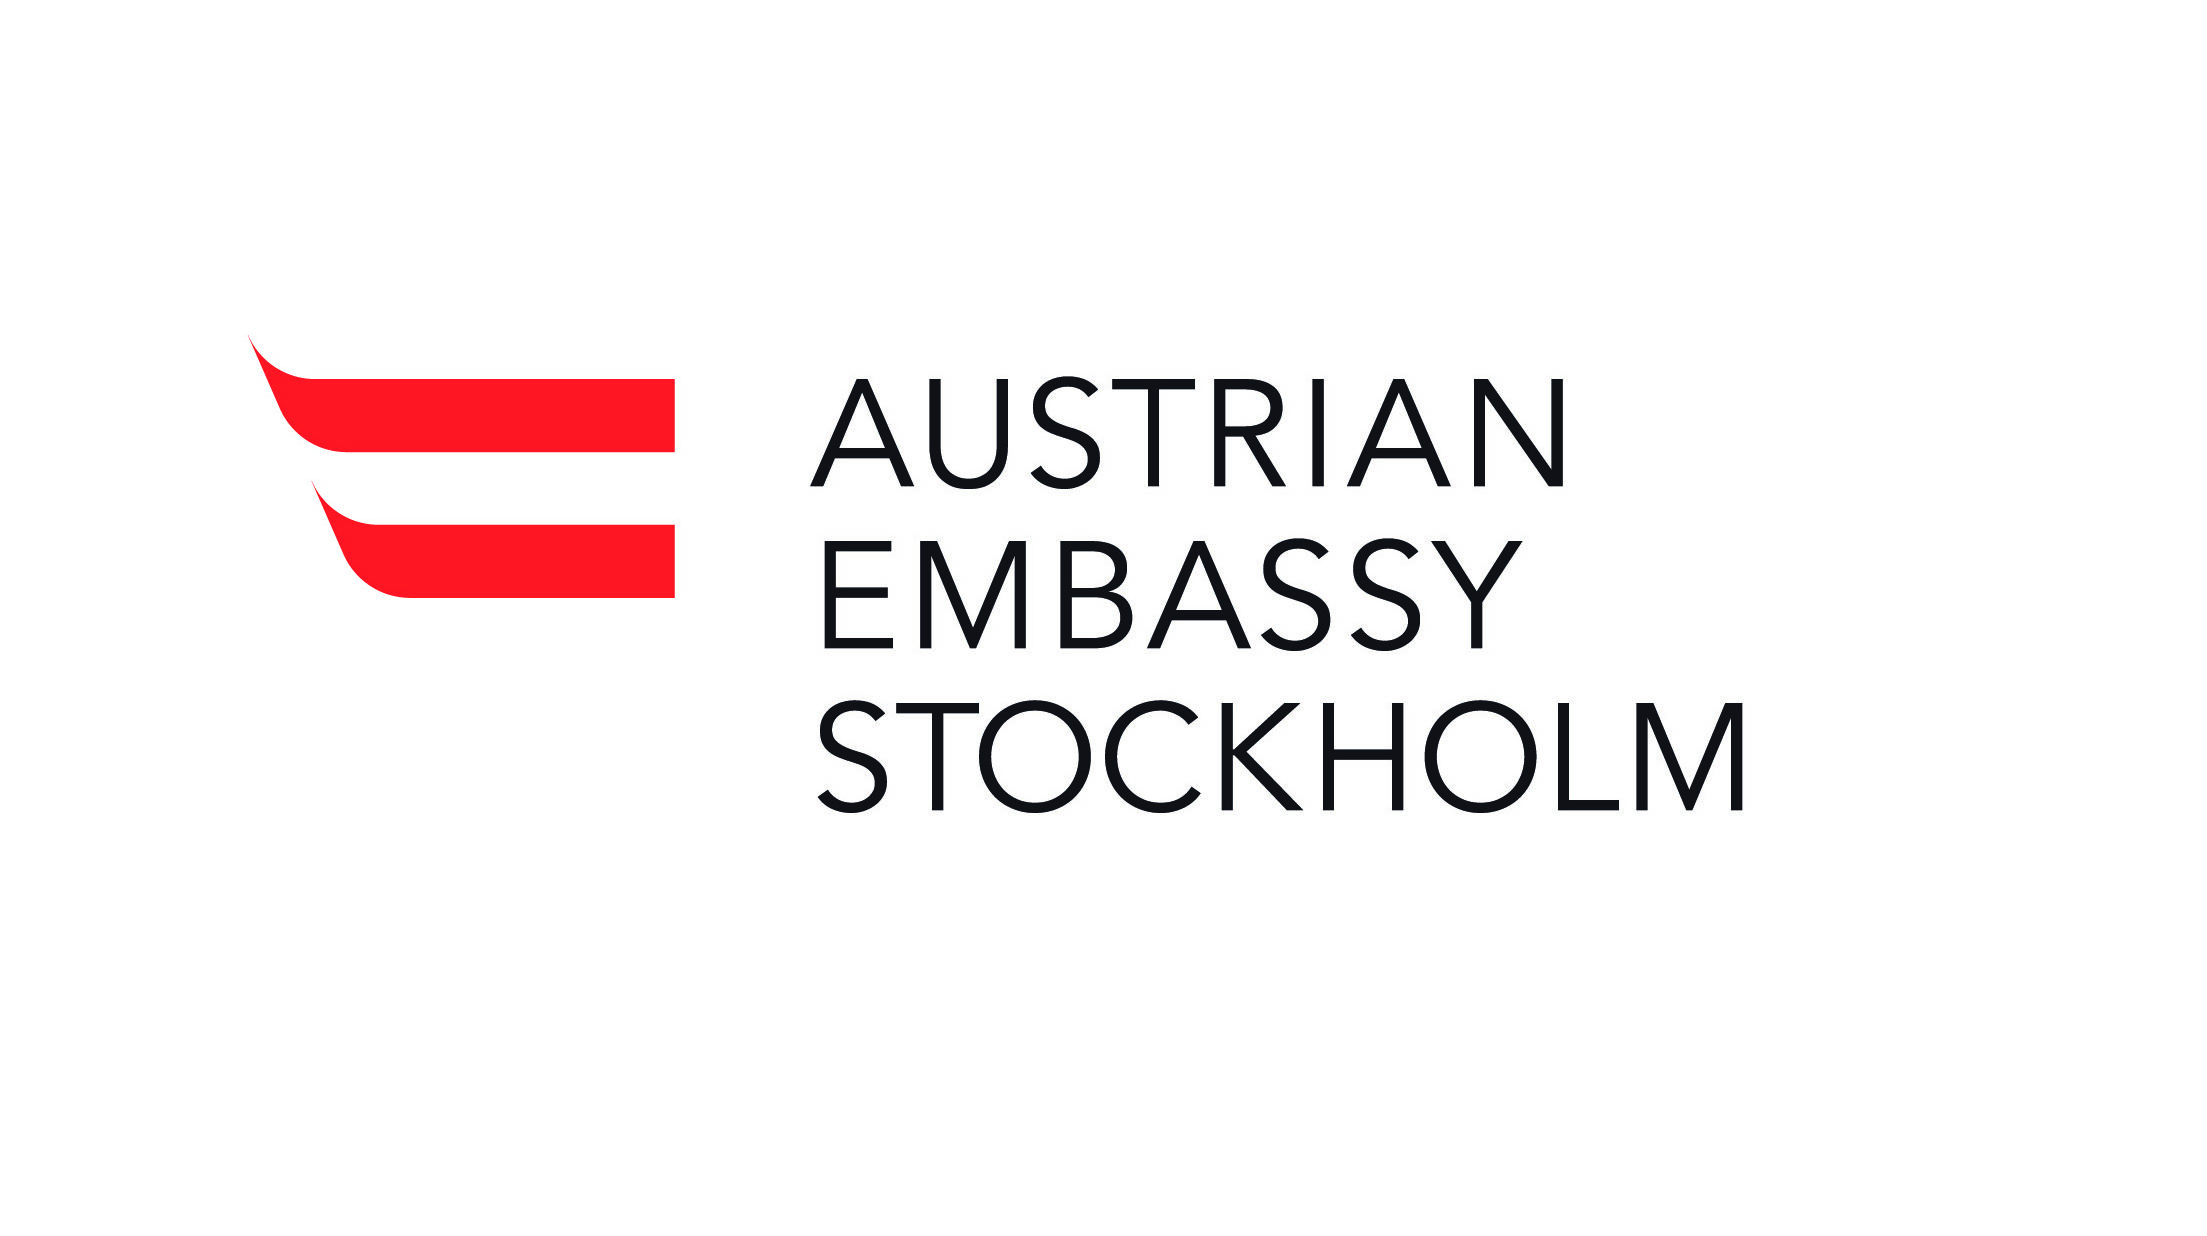 The Austrian Embassy Stockholm